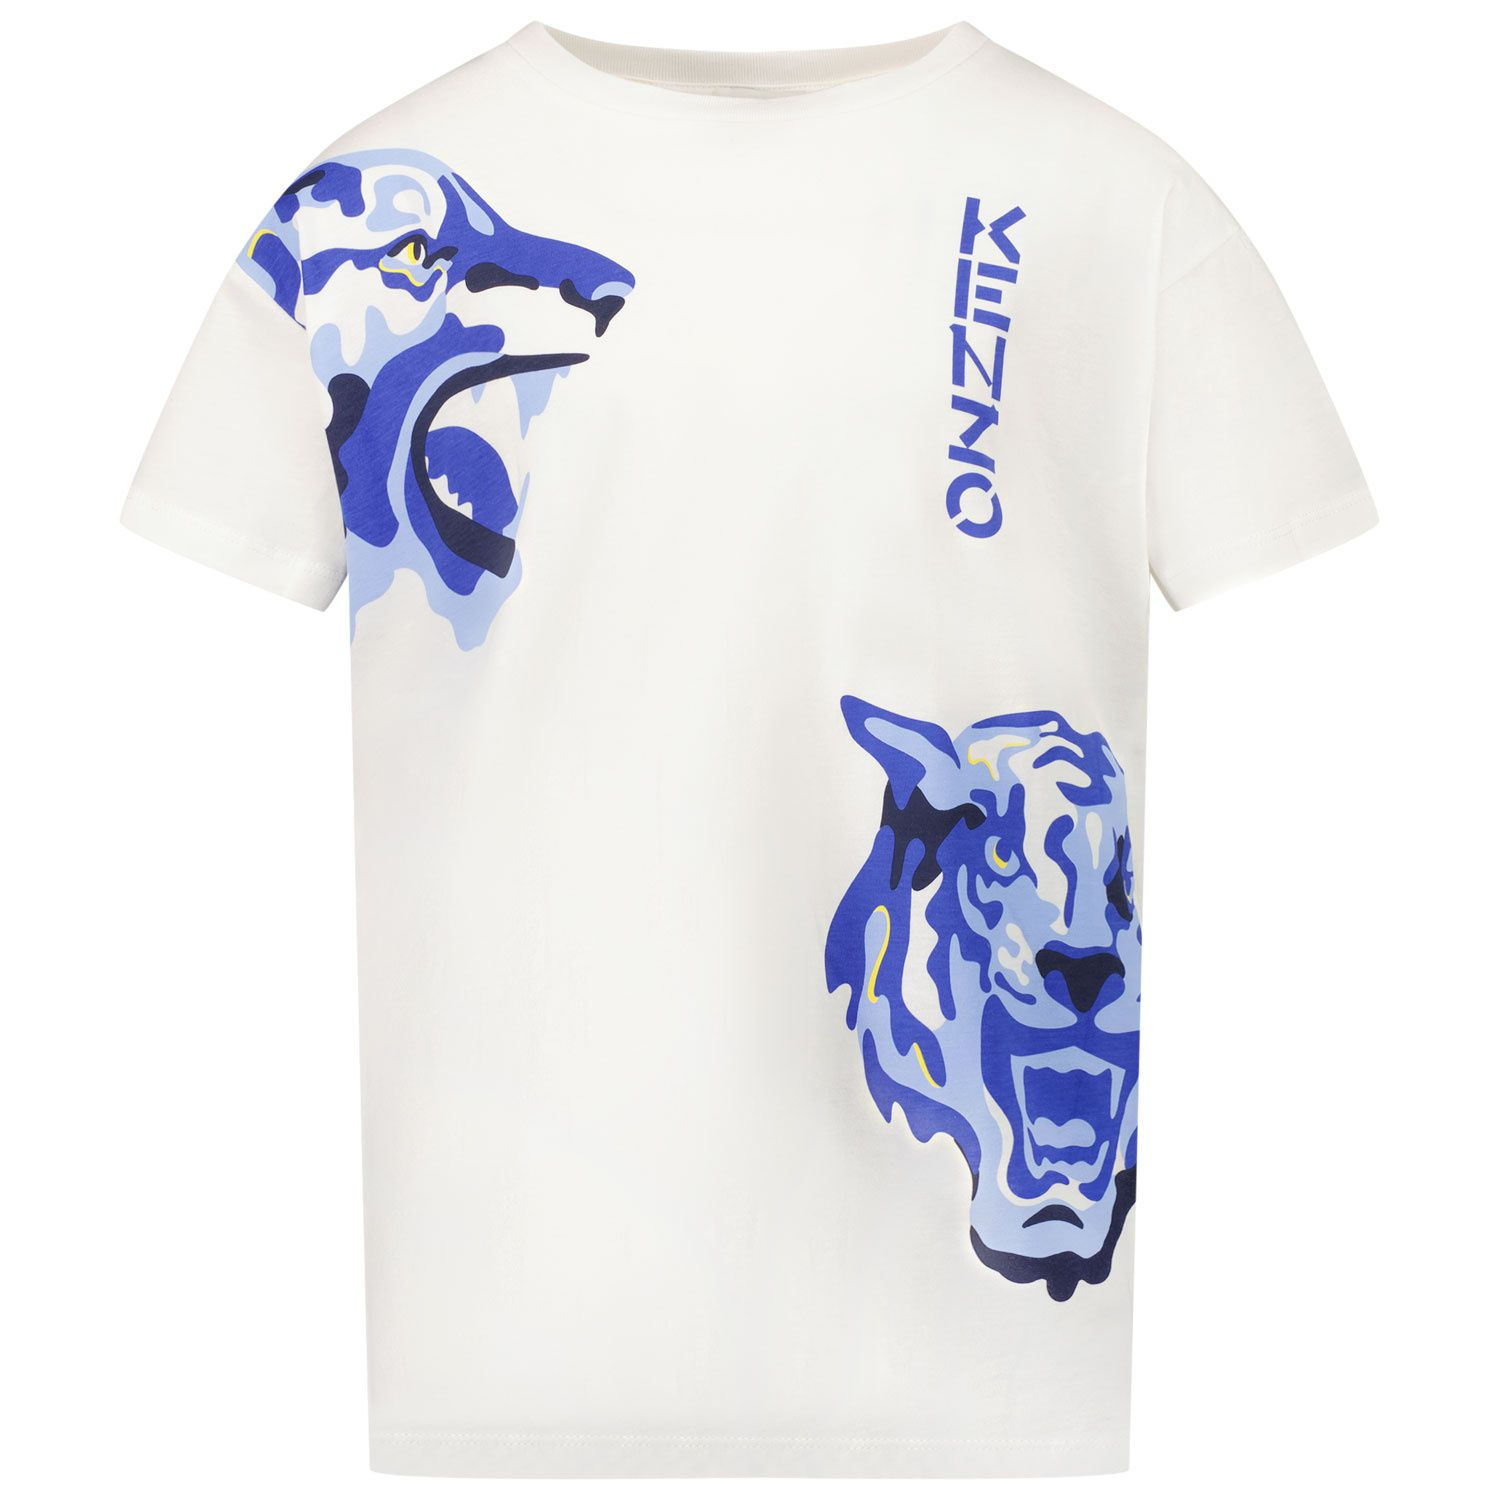 Picture of Kenzo K25174 kids t-shirt off white